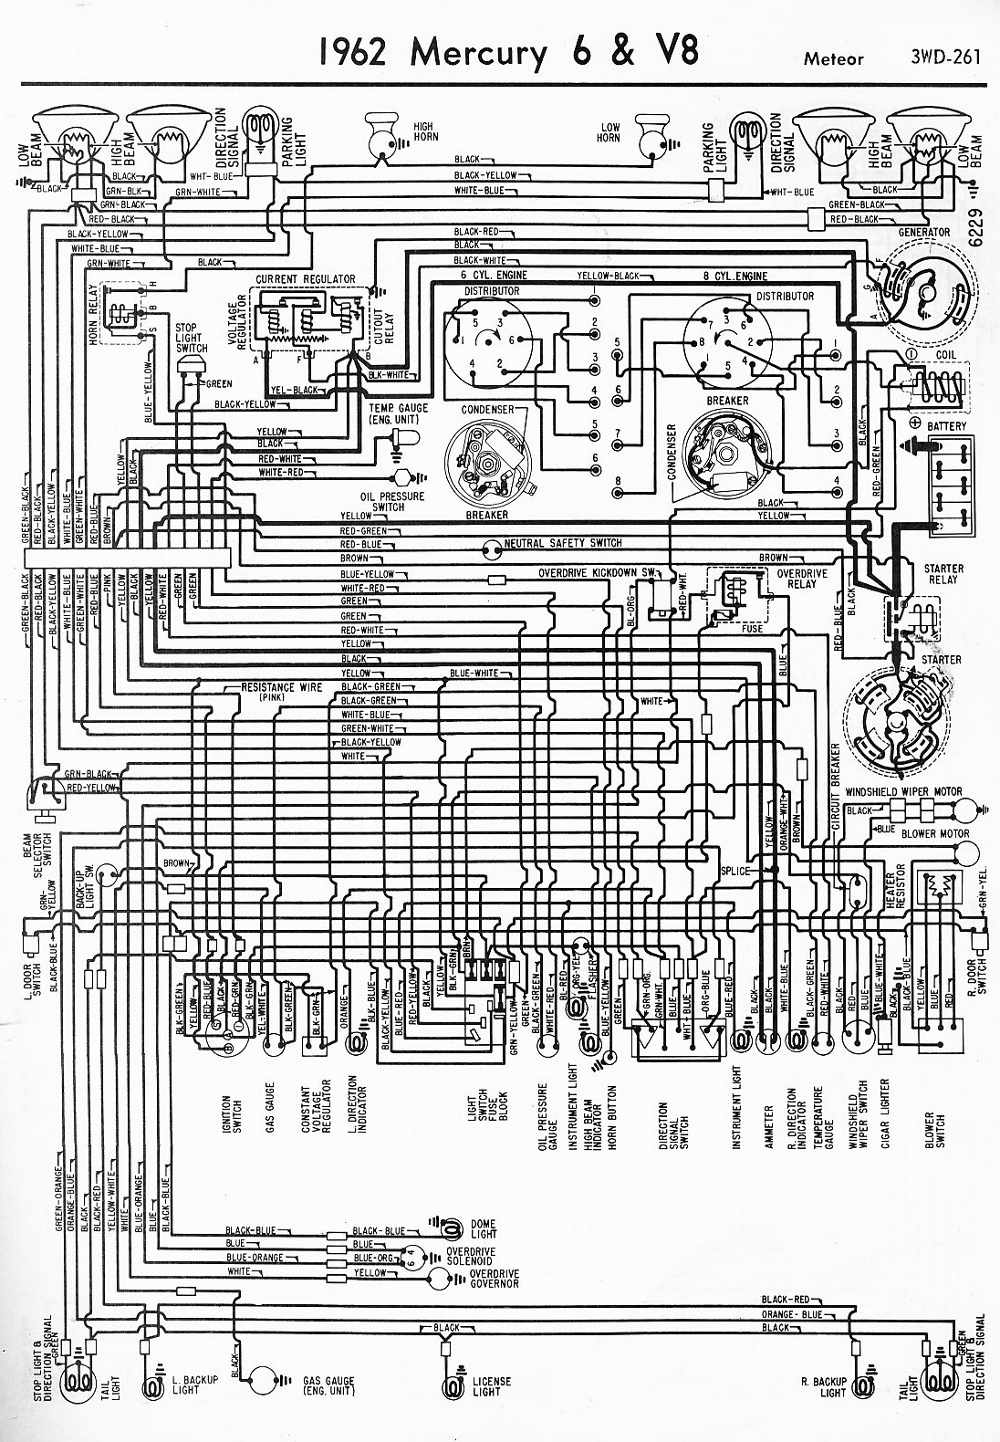 Proa: 1962 Mercury 6 and V8 Meteor Wiring Diagram